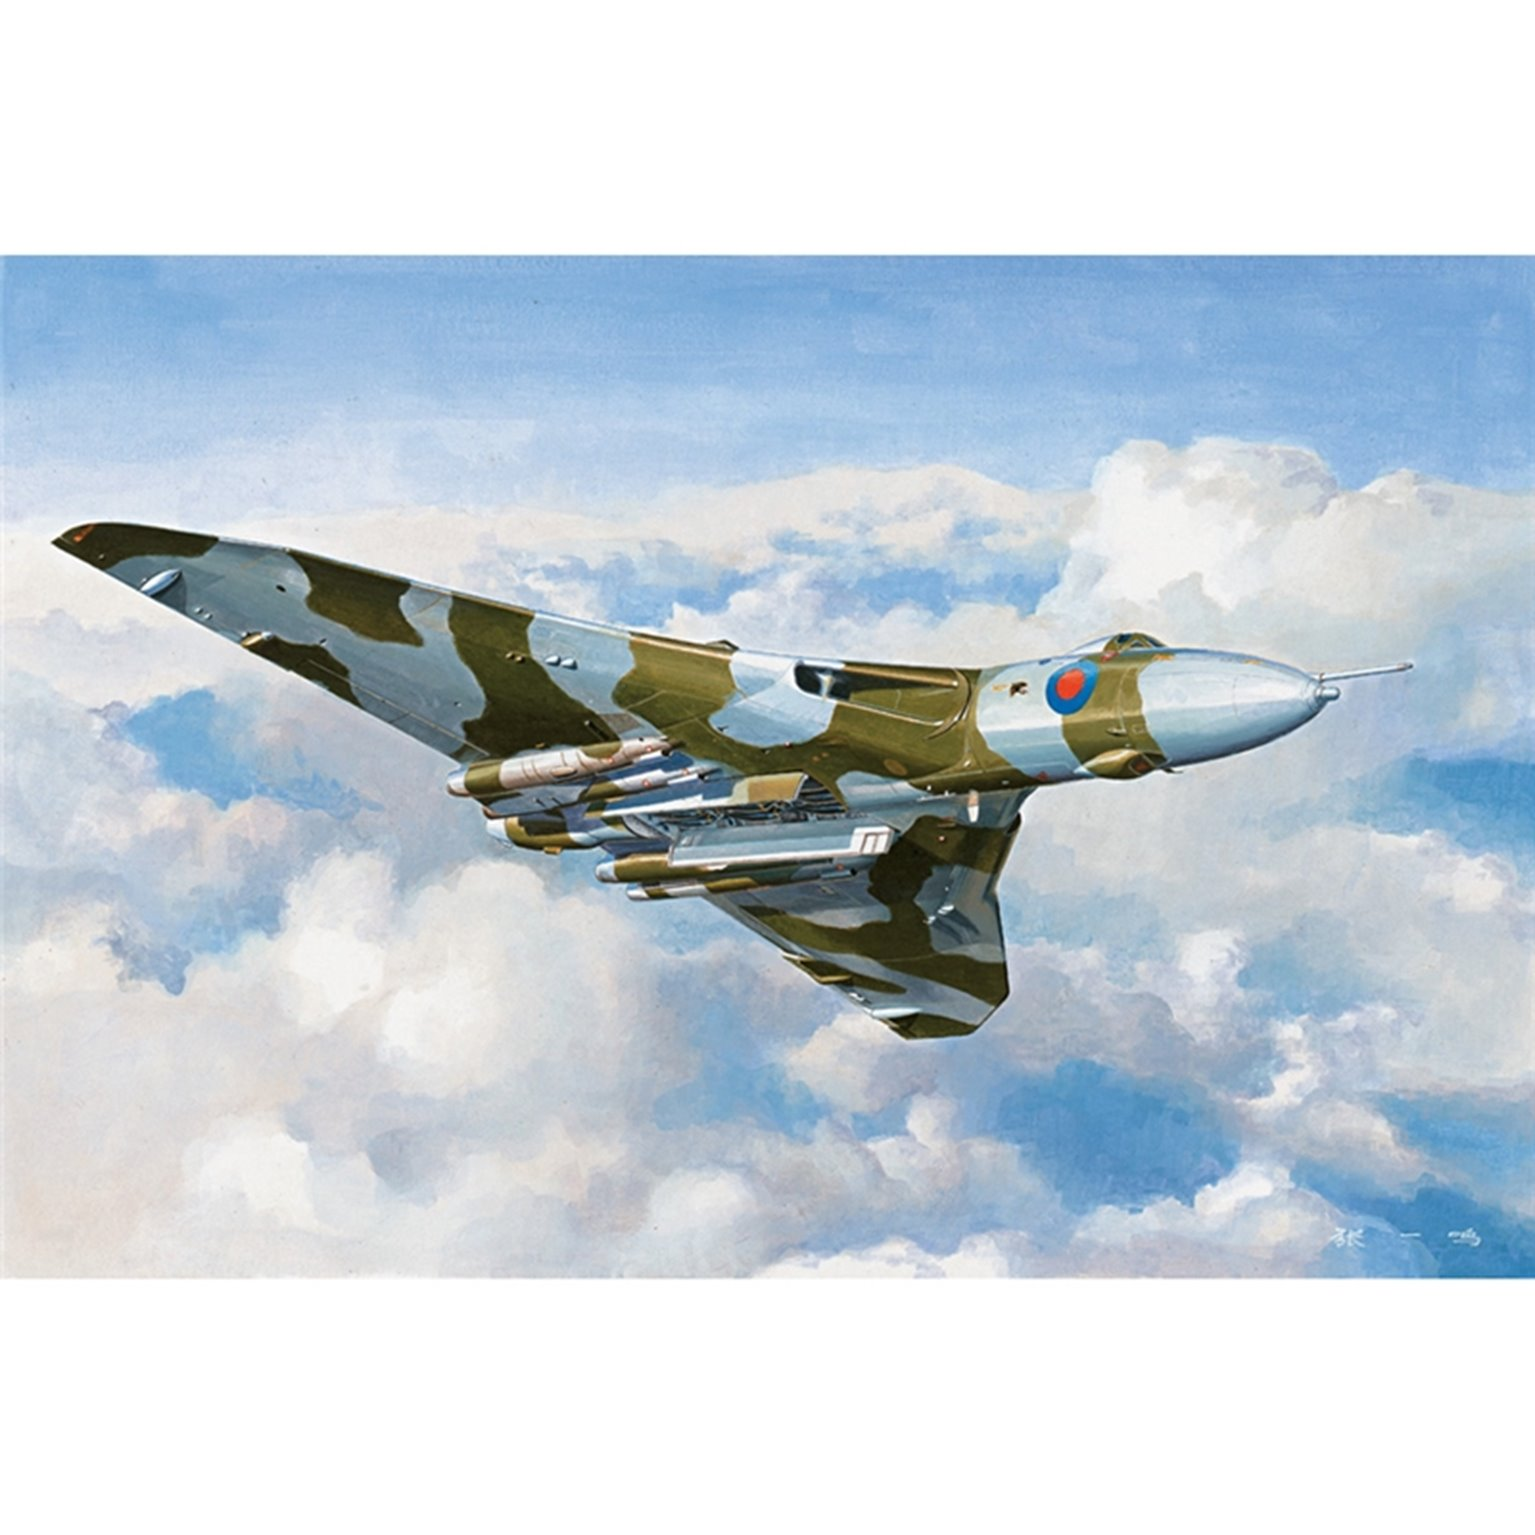 Avro Vulcan B Mk 2 Model Kit